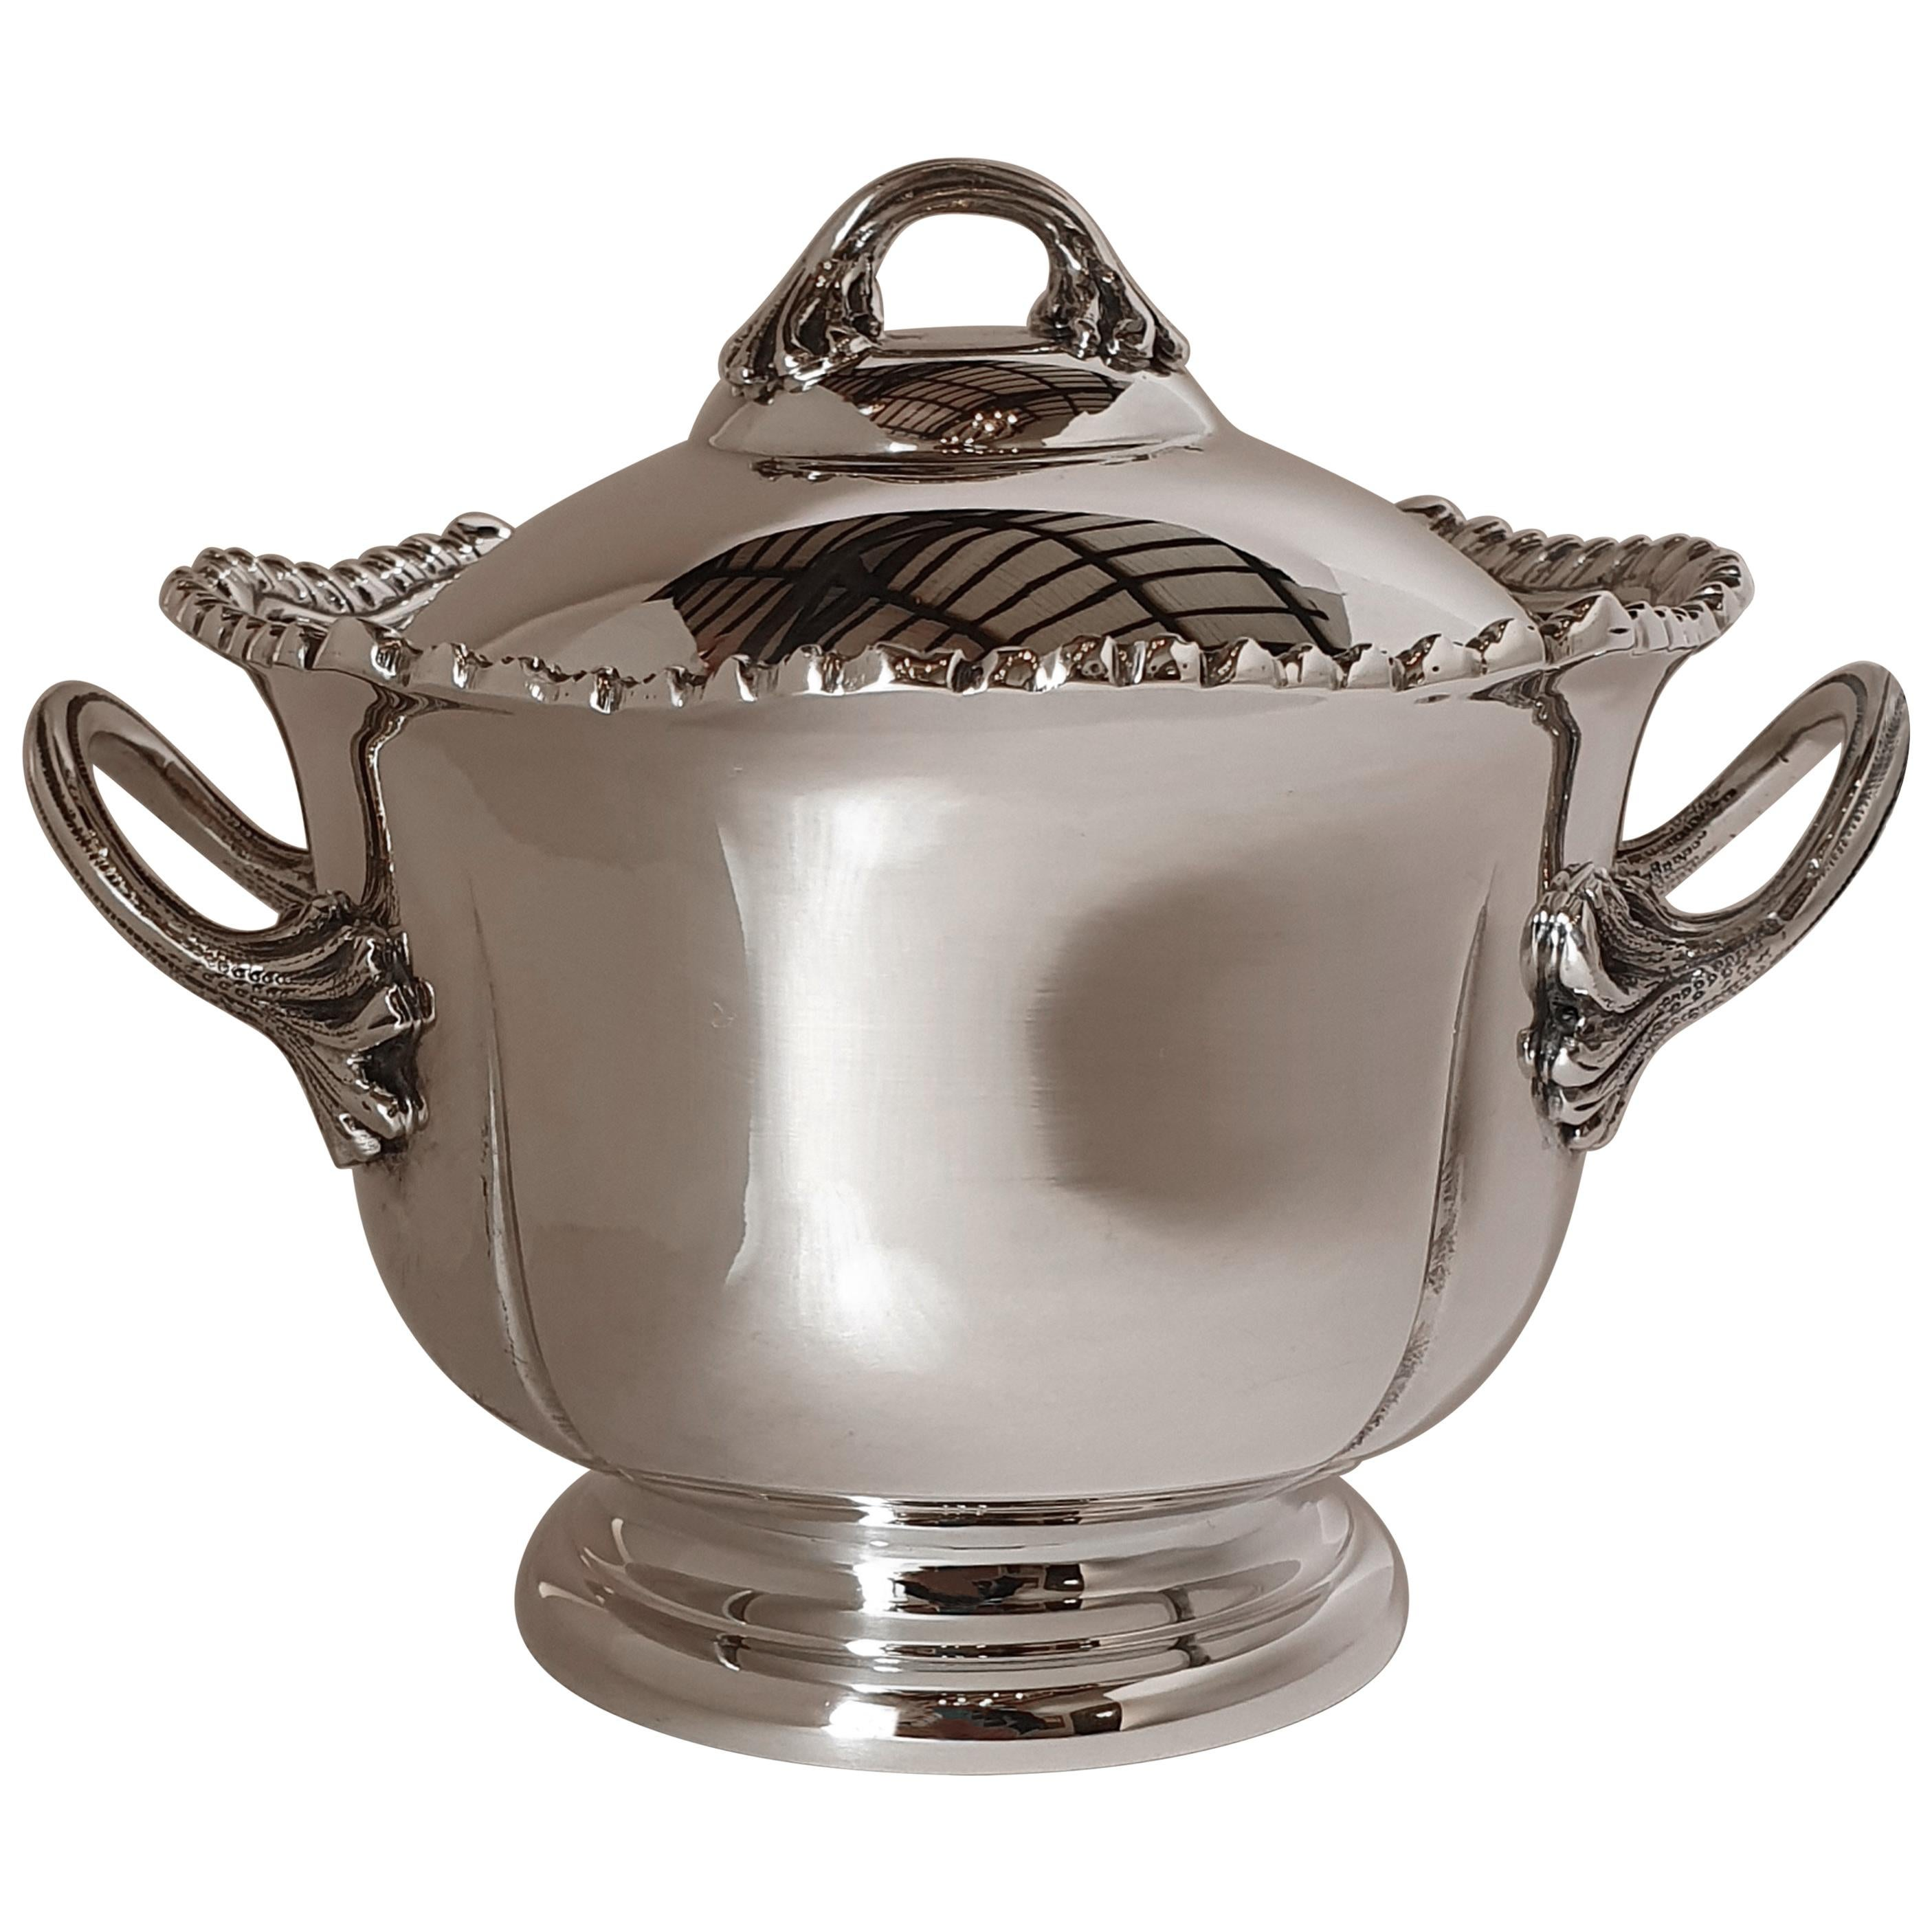 21st Century Georgian Style Hand-Crafted Sterling Silver Jam Jar, Italy, 2007